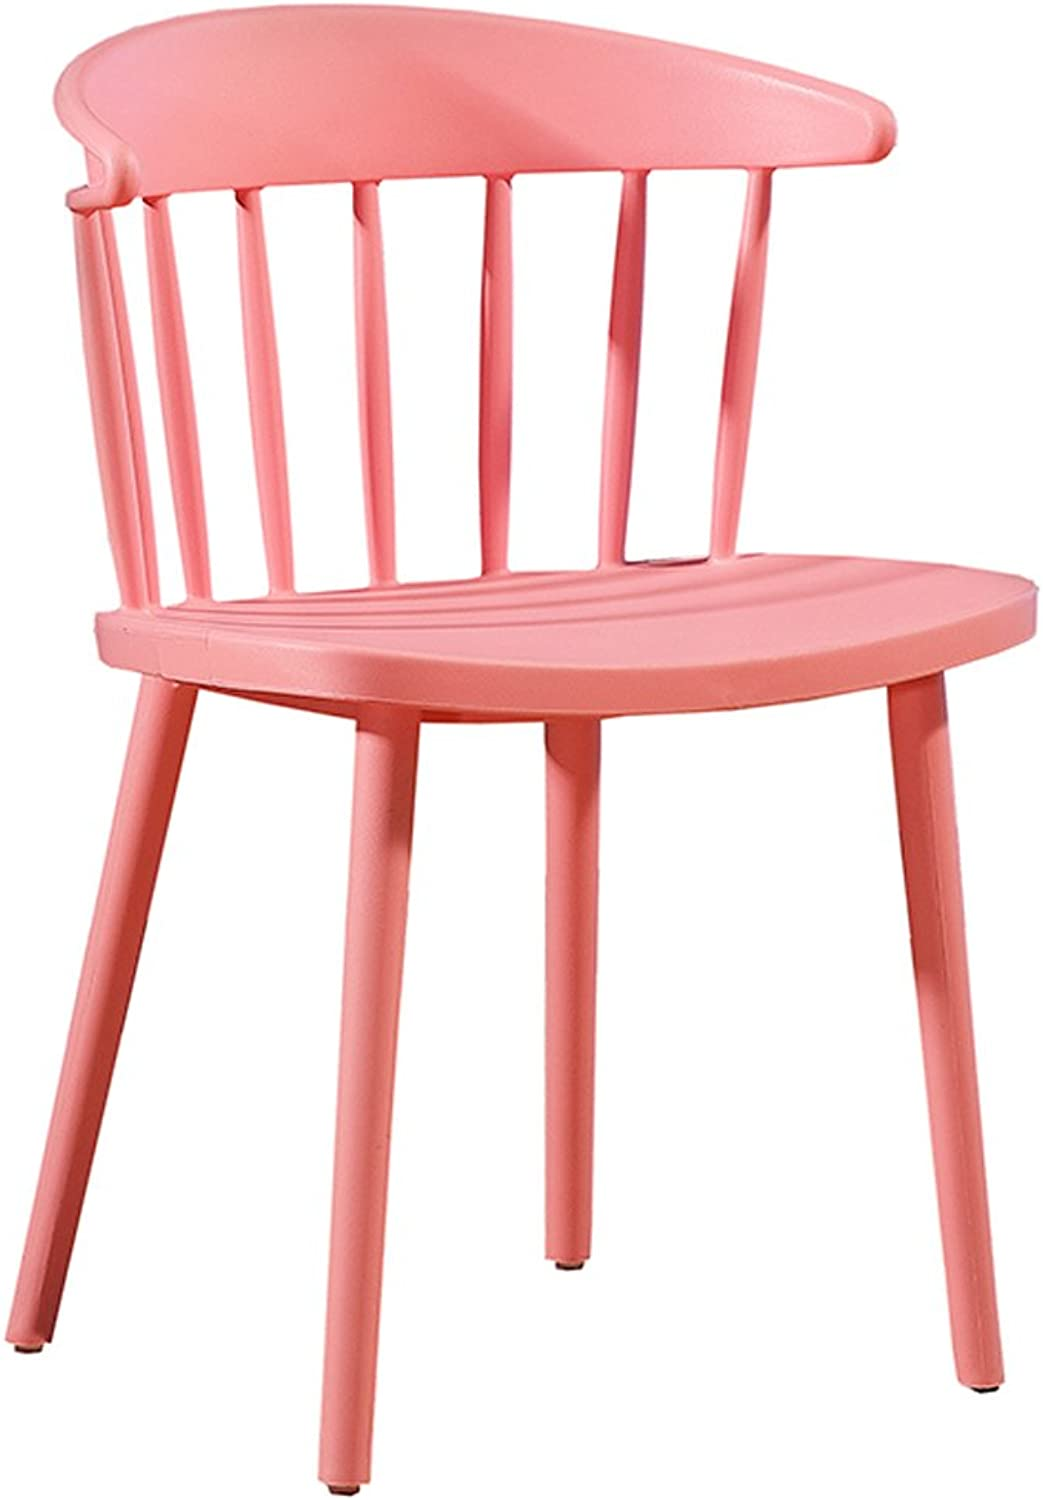 LRW Modern Simple Dining Chair, Home Plastic Backrest, Nordic Leisure Chair, Milk Tea Shop Chair (color   Pink)